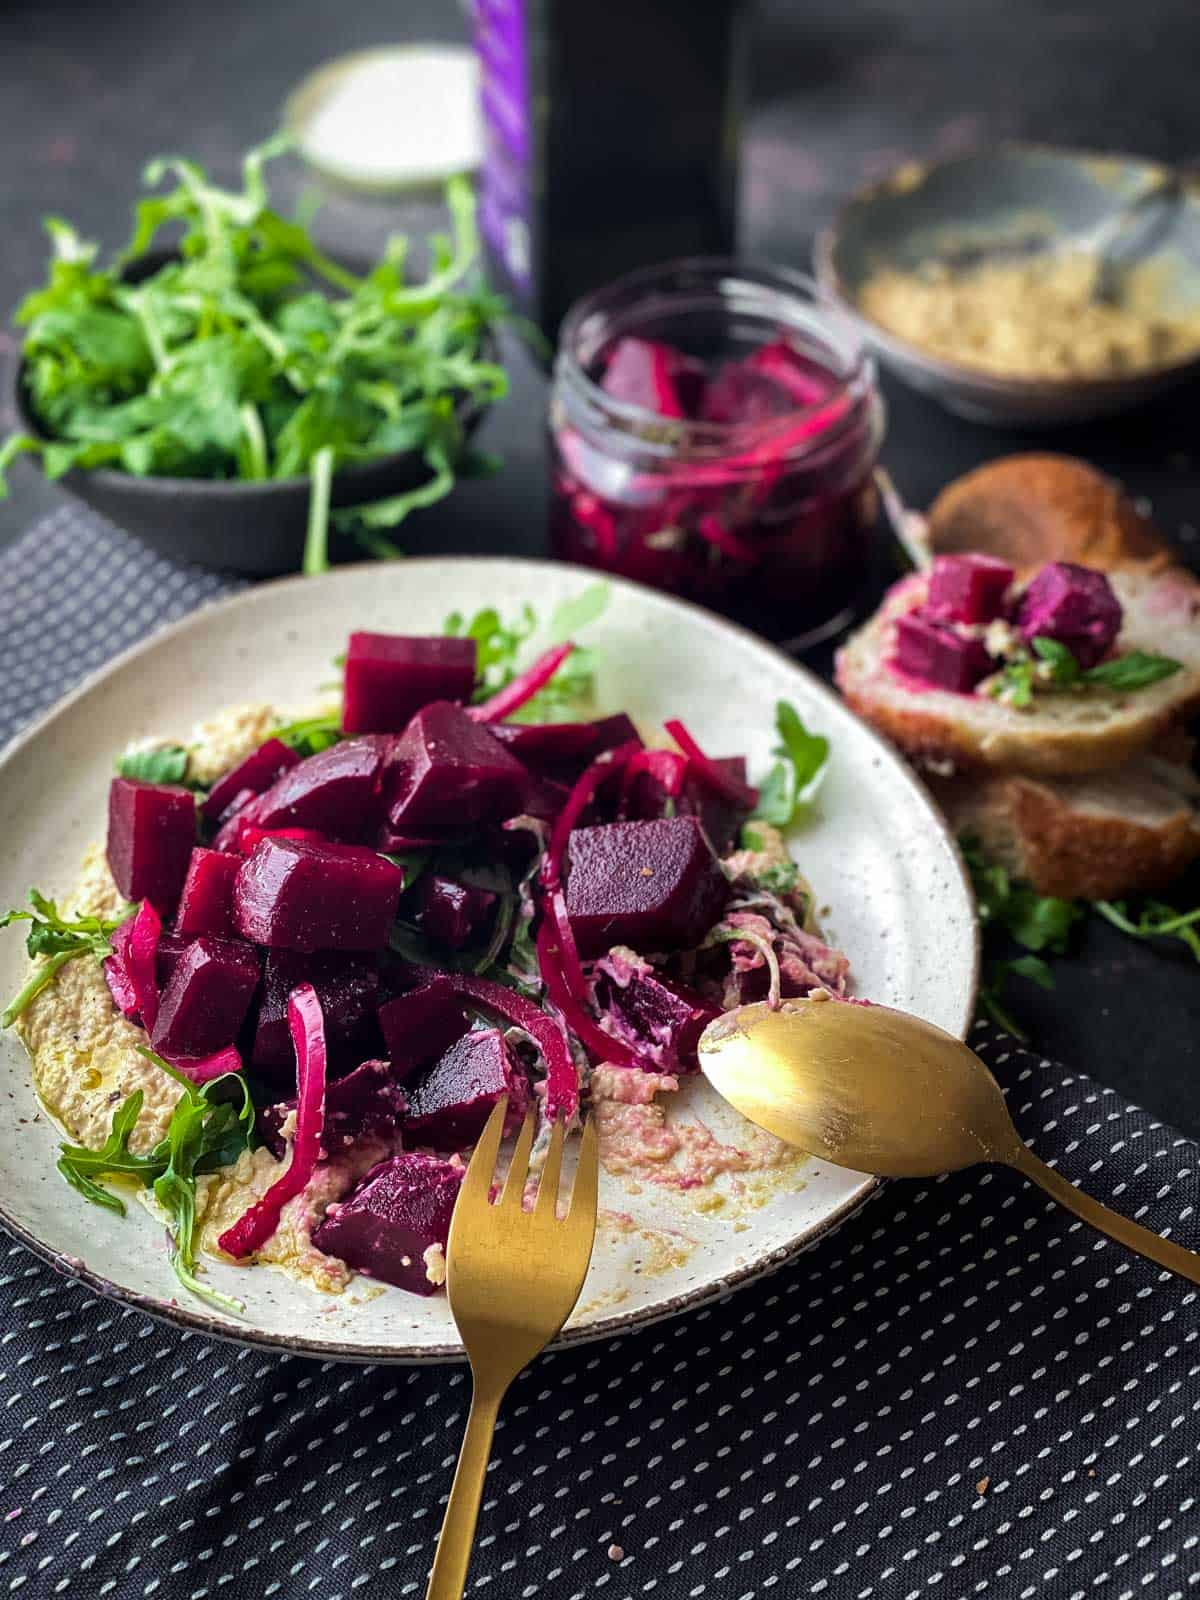 Pickled Beet Salad with Chickpea Mash